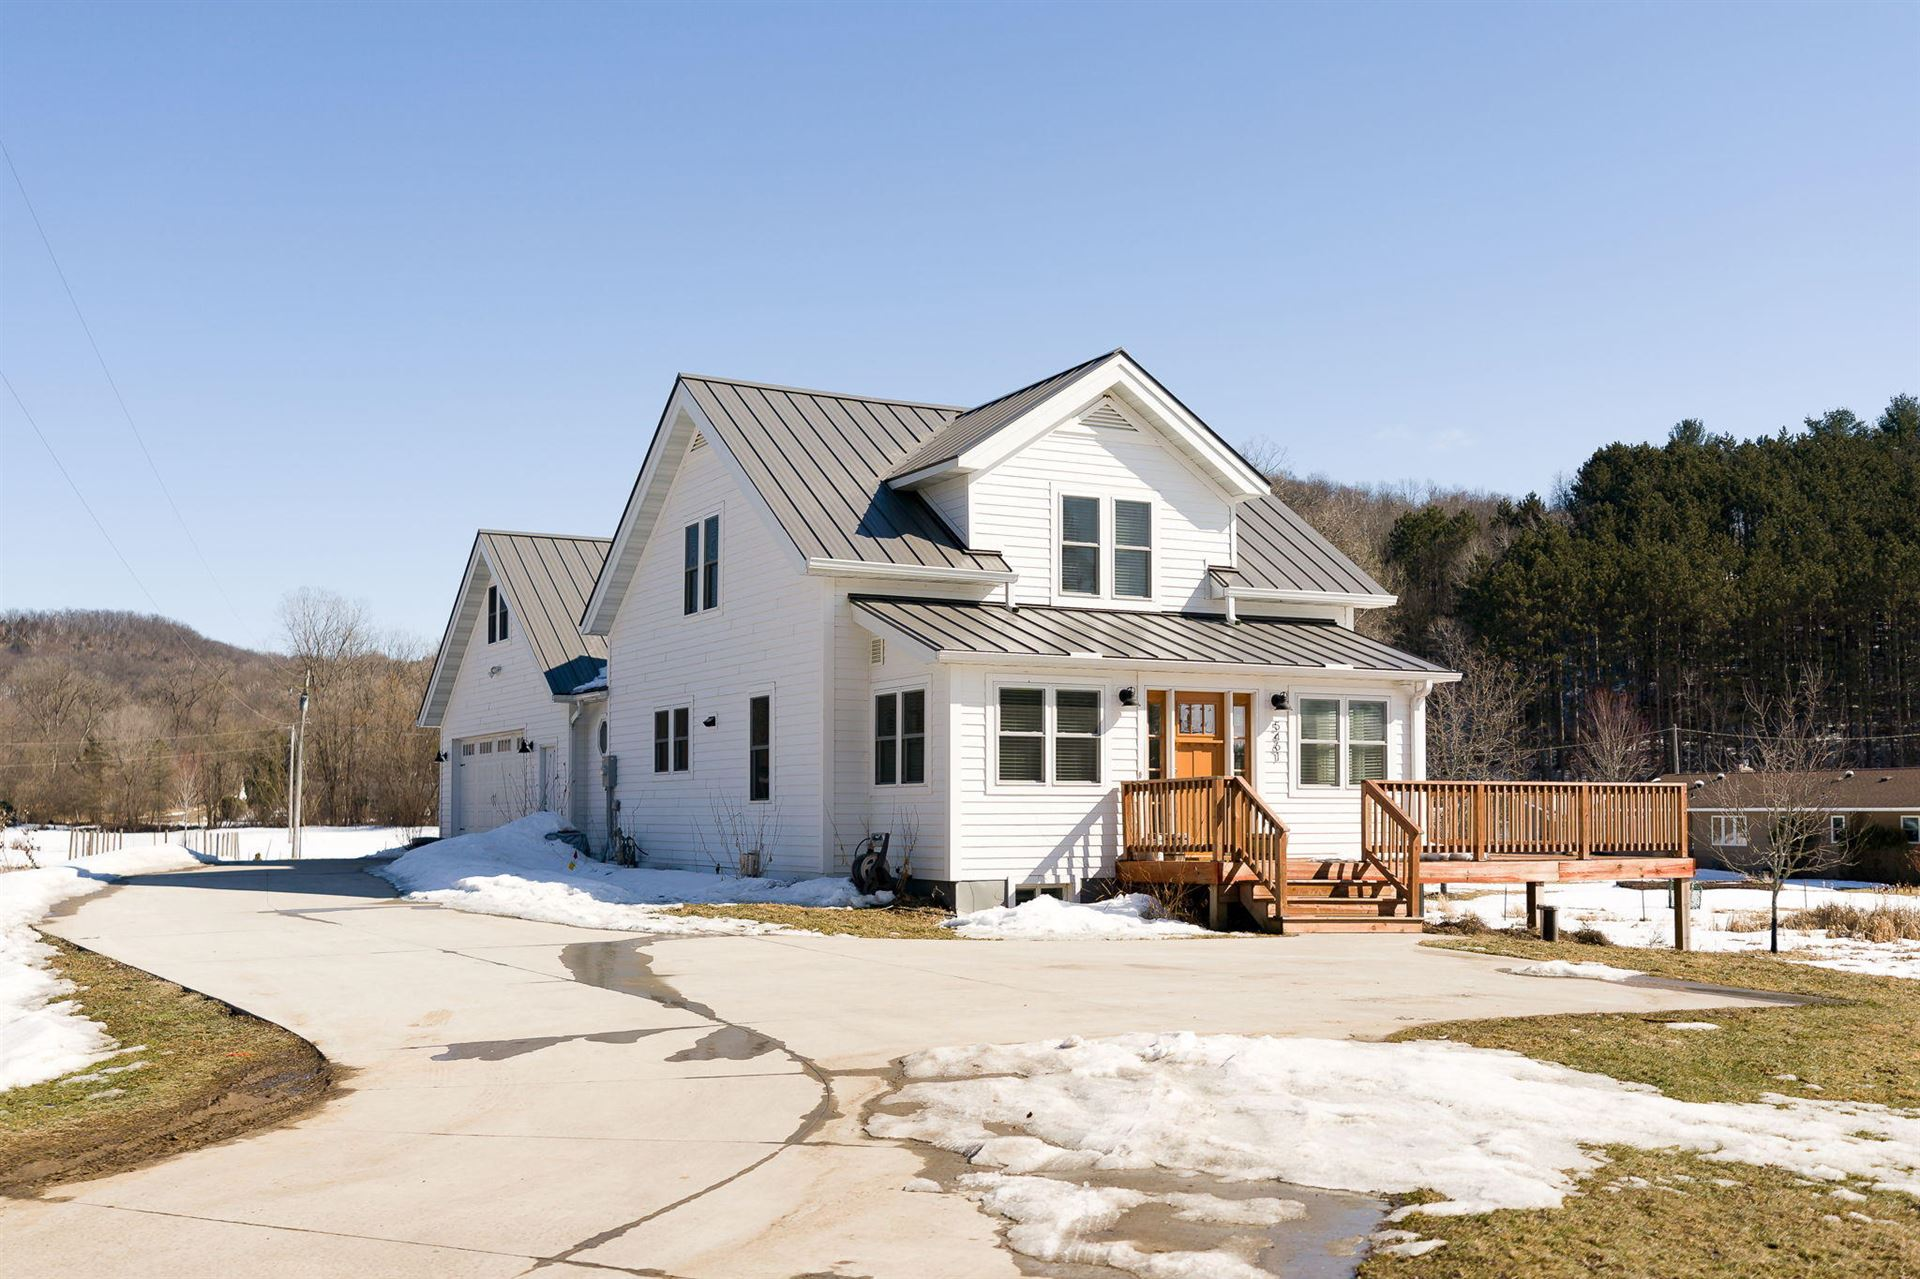 W5461 Boma Rd, Shelby, WI 54601 - MLS#: 1679273